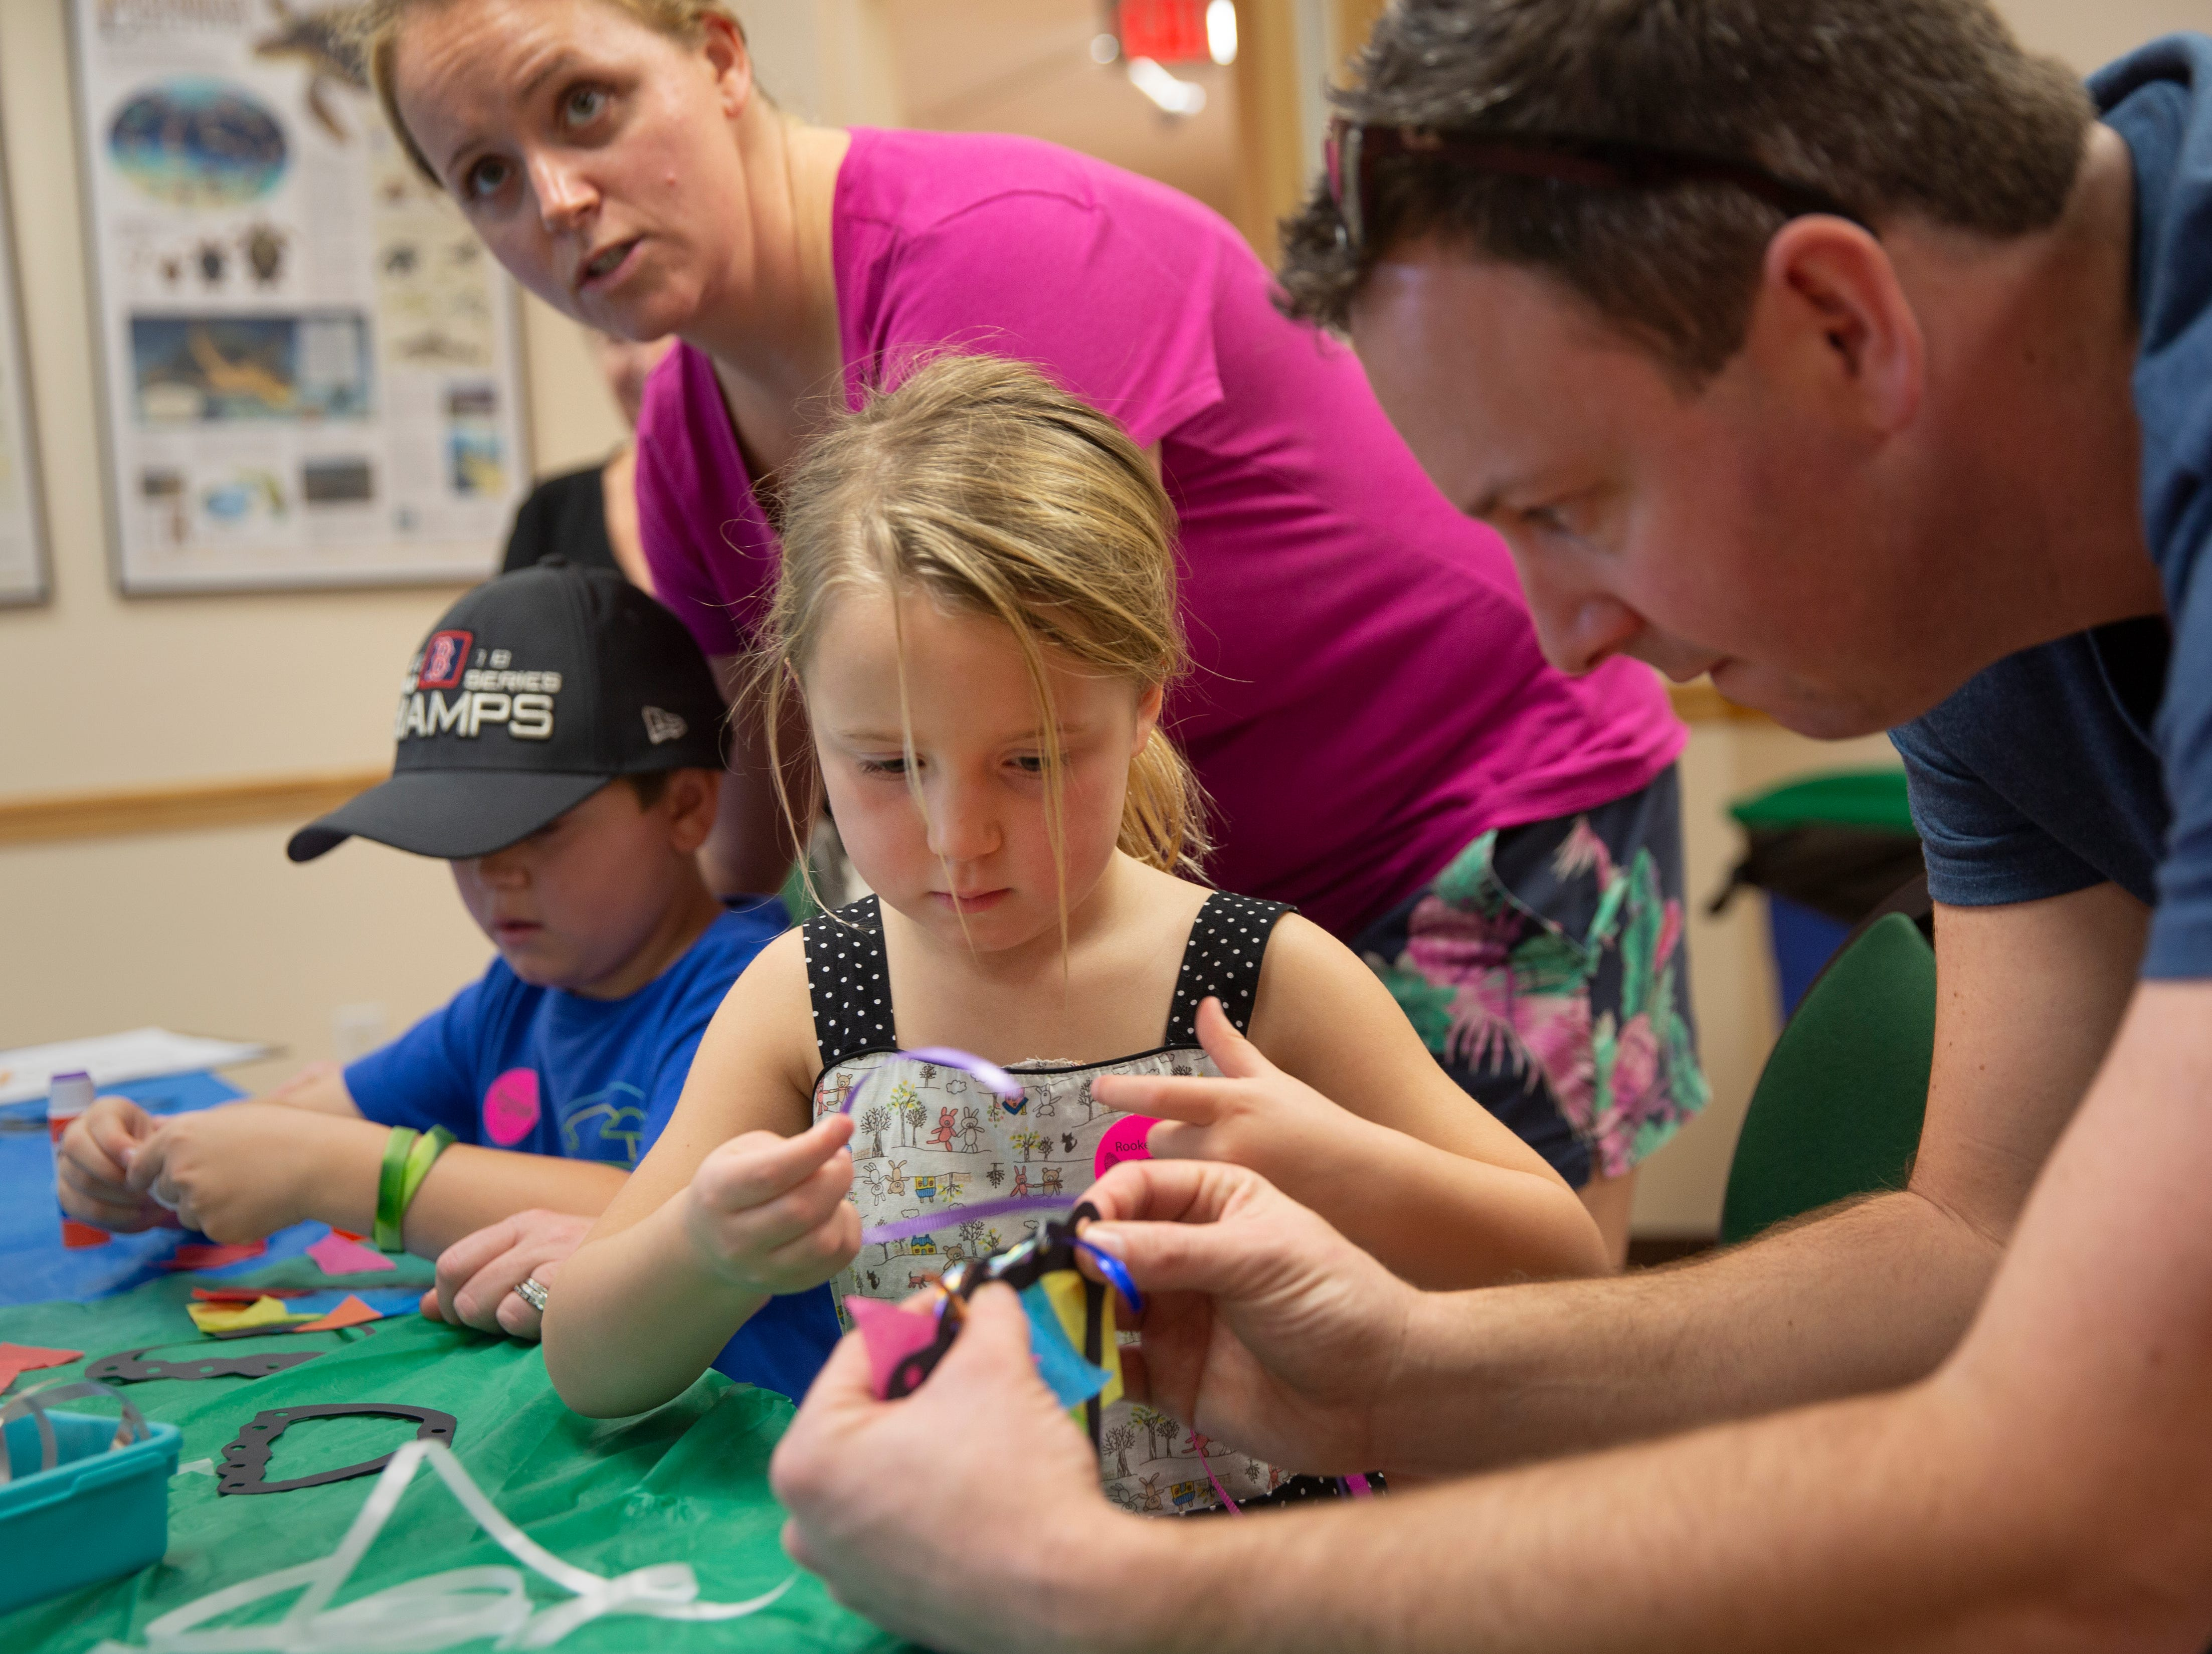 The Gillespie family, from left, son Jack Gillespie, mom Cristin Gillespie, daughter Eleanor Gillespie and dad Sean Gillespie work on a craft project during the Rookery Bay Environmental Learning Center's Science Saturday, Dec. 29, 2018 south of Naples.